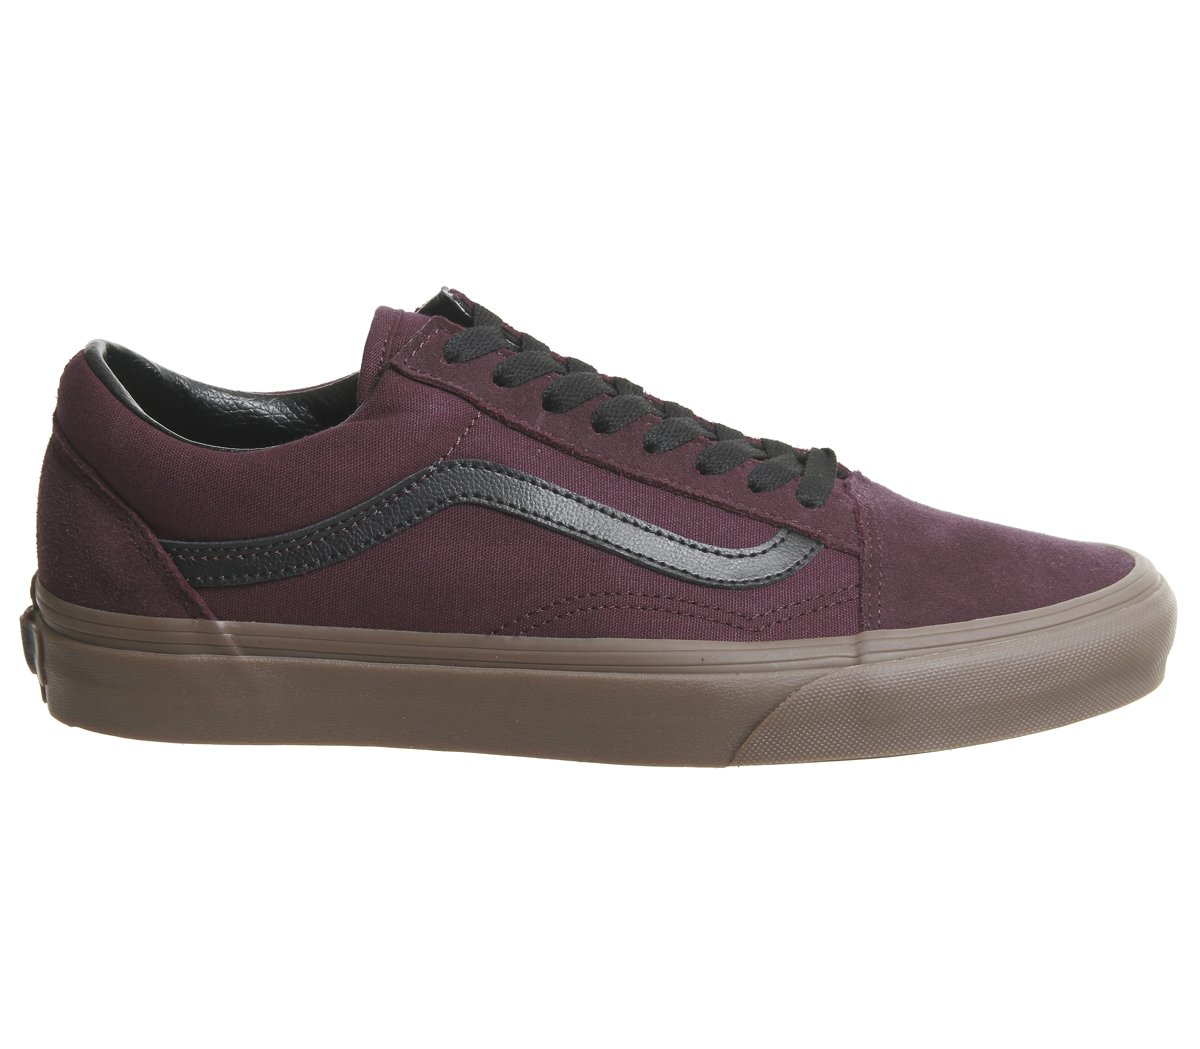 dfd4c72727 Vans Unisex Shoes Old Skool (Gum Outsole) Catawba Grape Sneakers (7 D(M) US  Men 8.5 B(M) US Women)